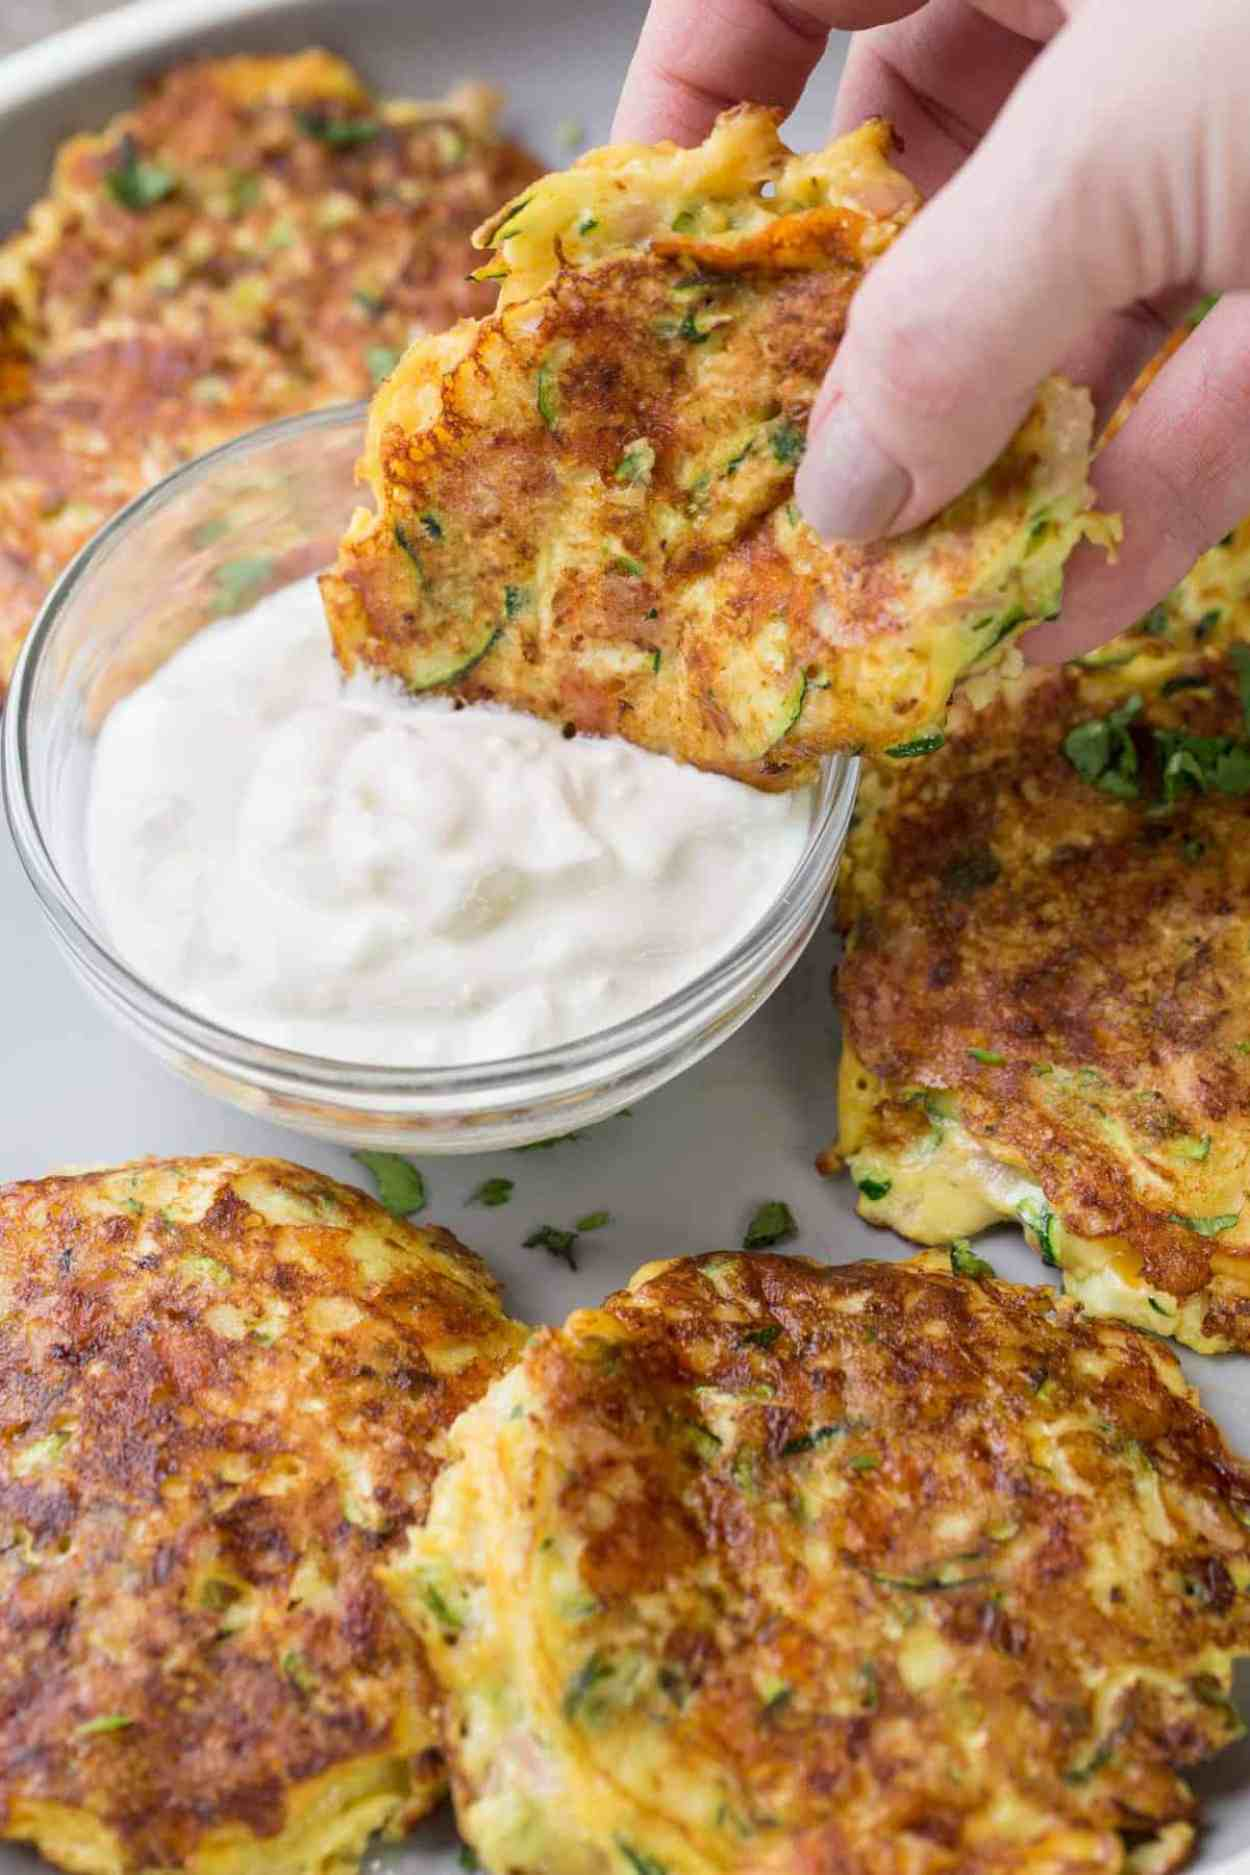 Zucchini Fritter dipped into the mayo mixture on a plate.